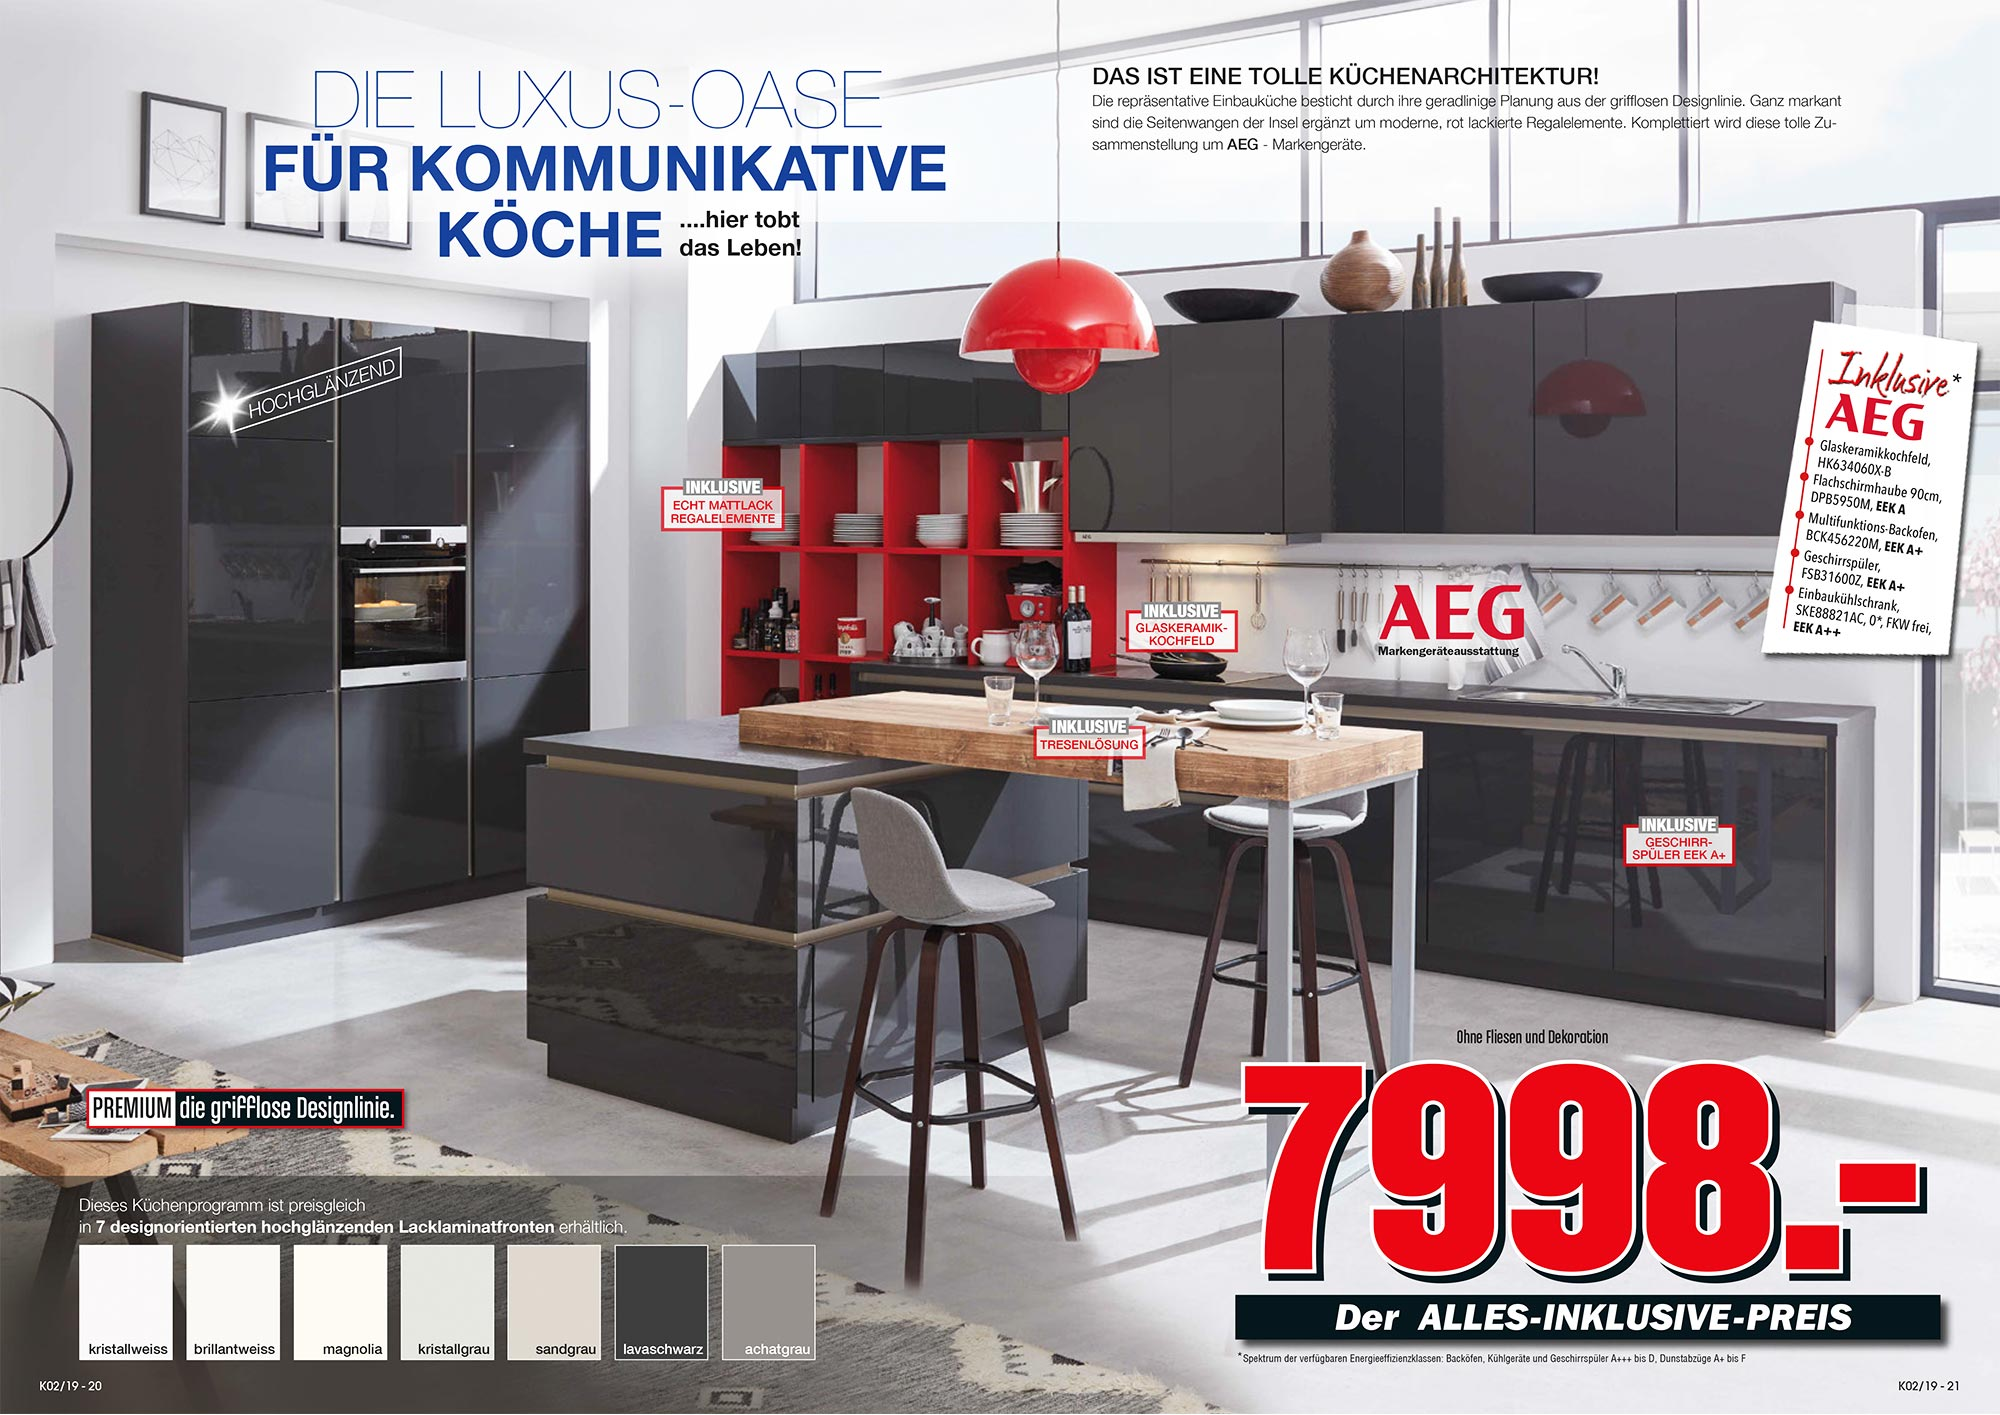 kchen quelle katalog bestellen top die neue with kchen quelle katalog bestellen katalog. Black Bedroom Furniture Sets. Home Design Ideas